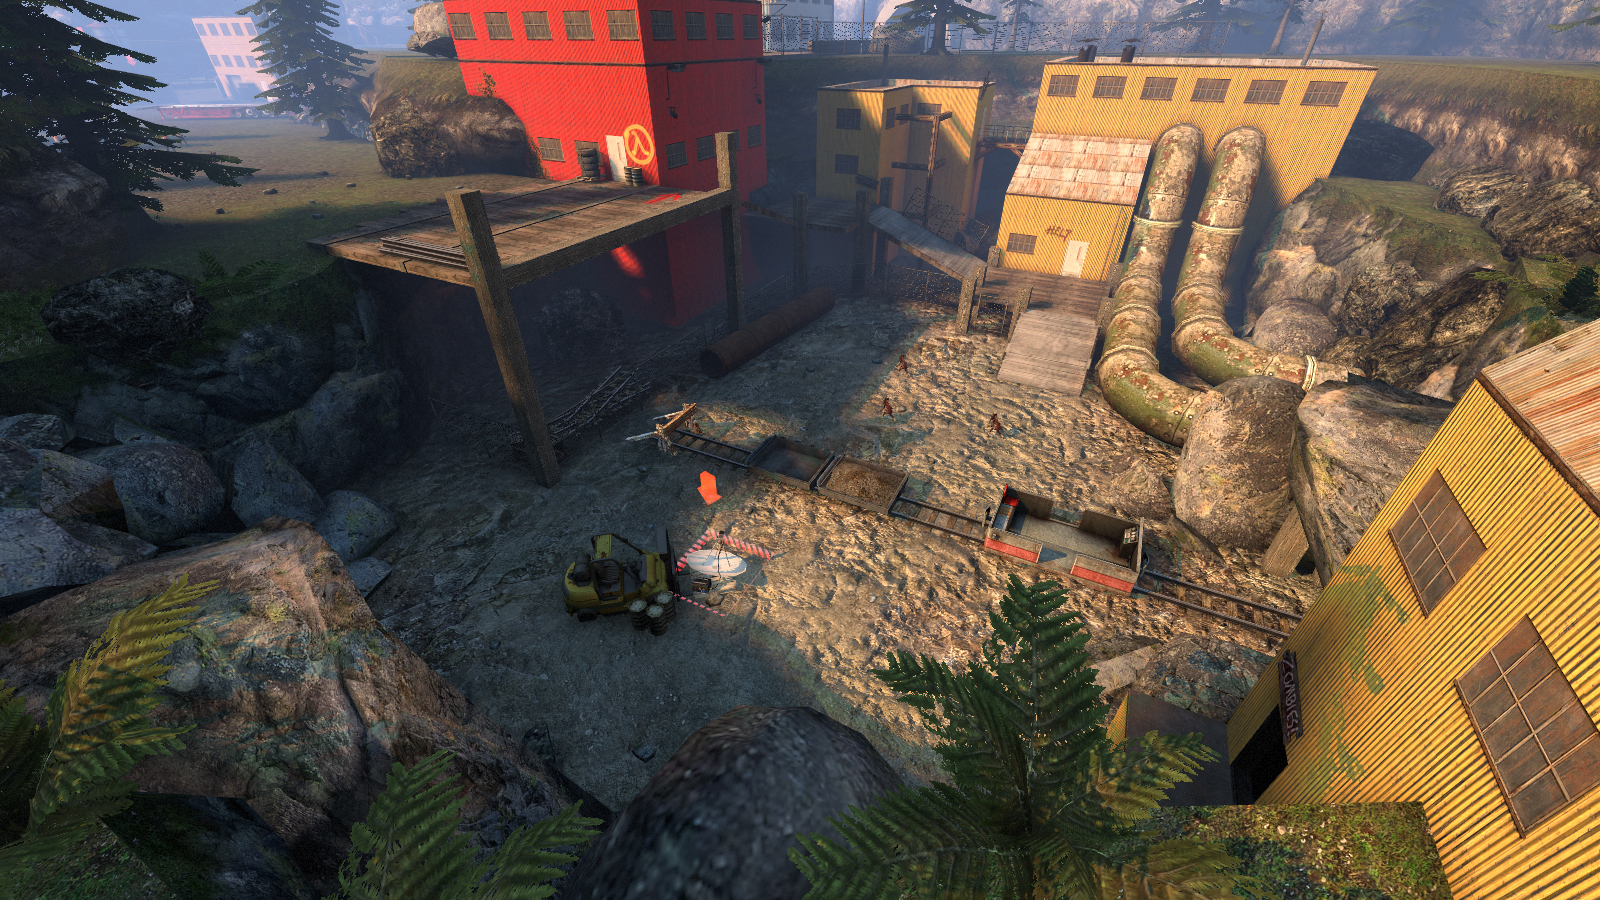 Half-Life 2 as a real-time strategy game? Yes, there is